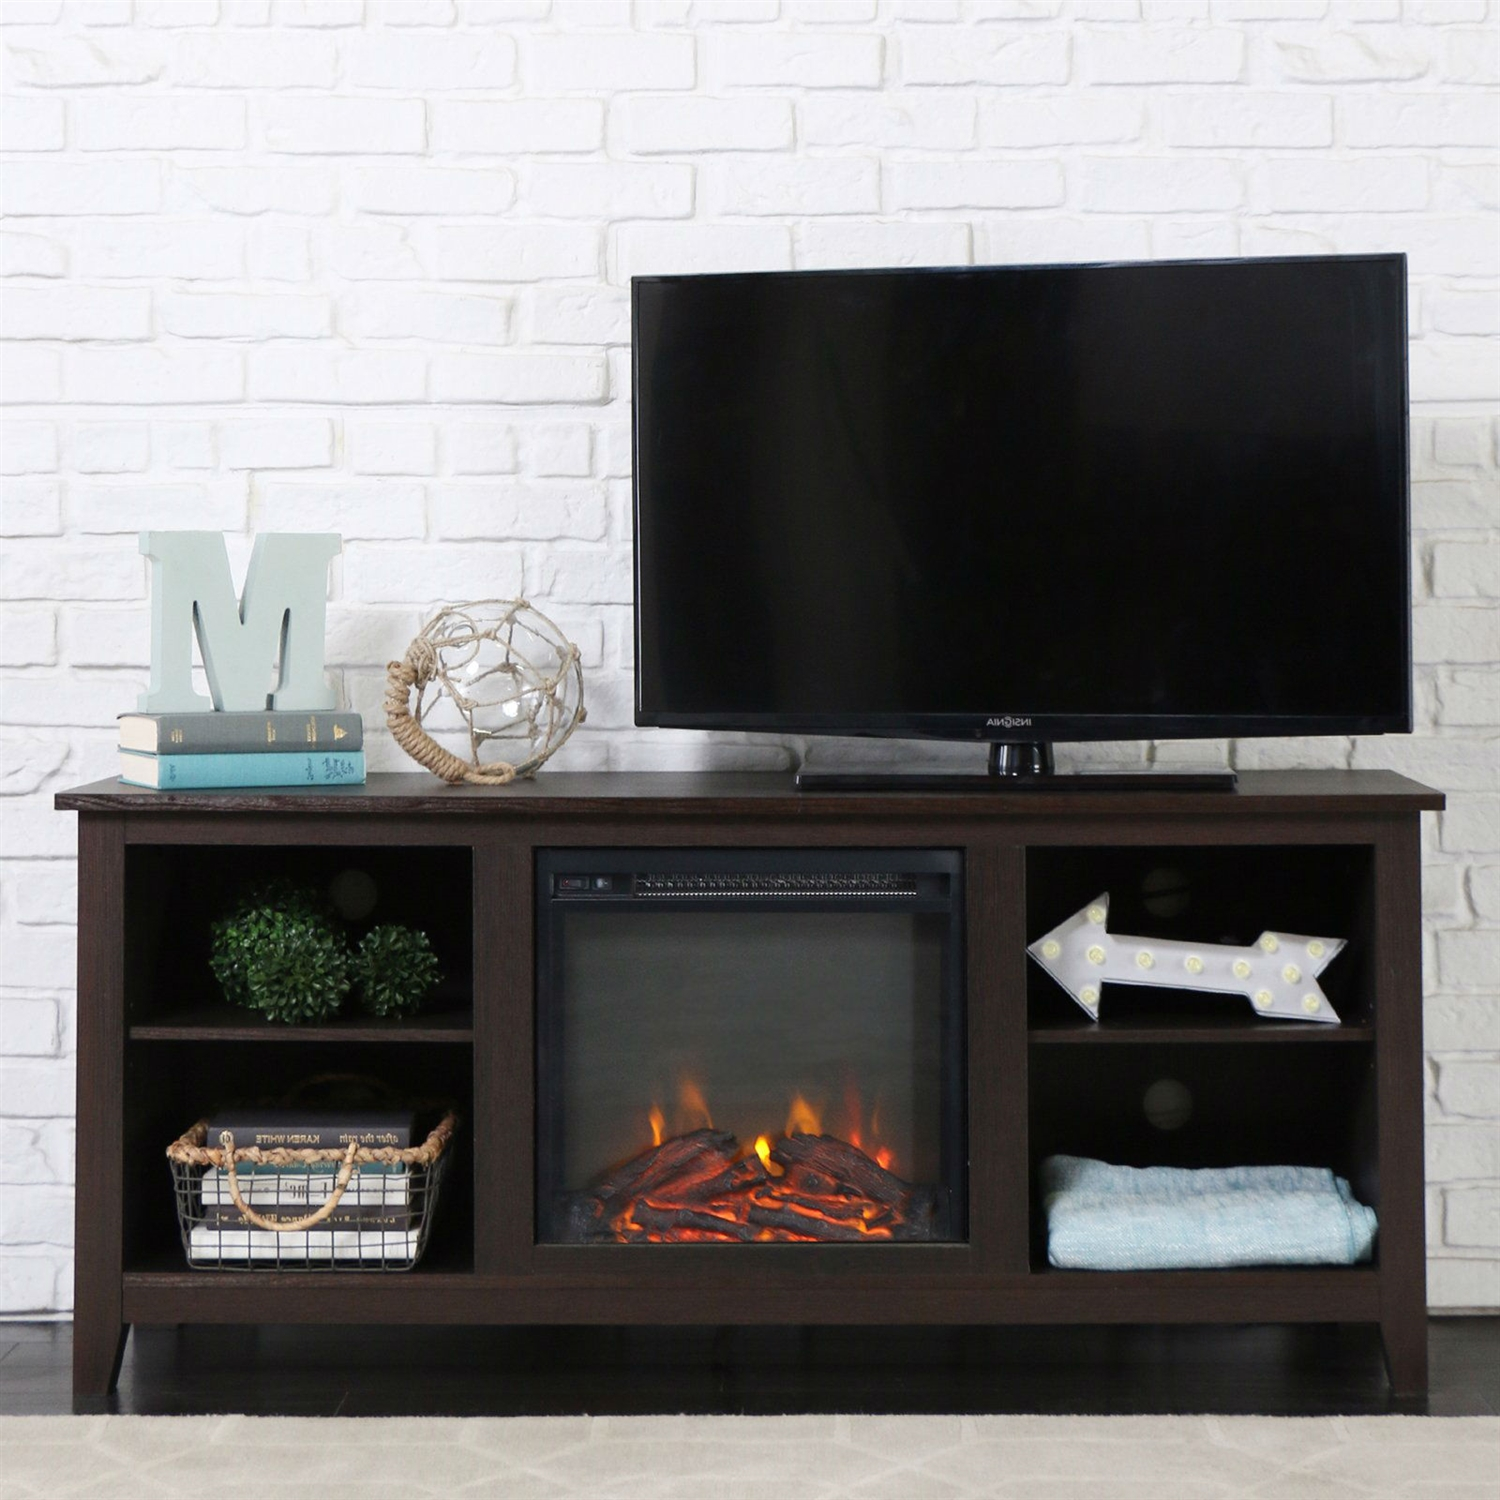 This Espresso Wood 58-inch TV Stand Electric Fireplace Space Heater brings warmth and class to any living room setting. Crafted from robust solid wood